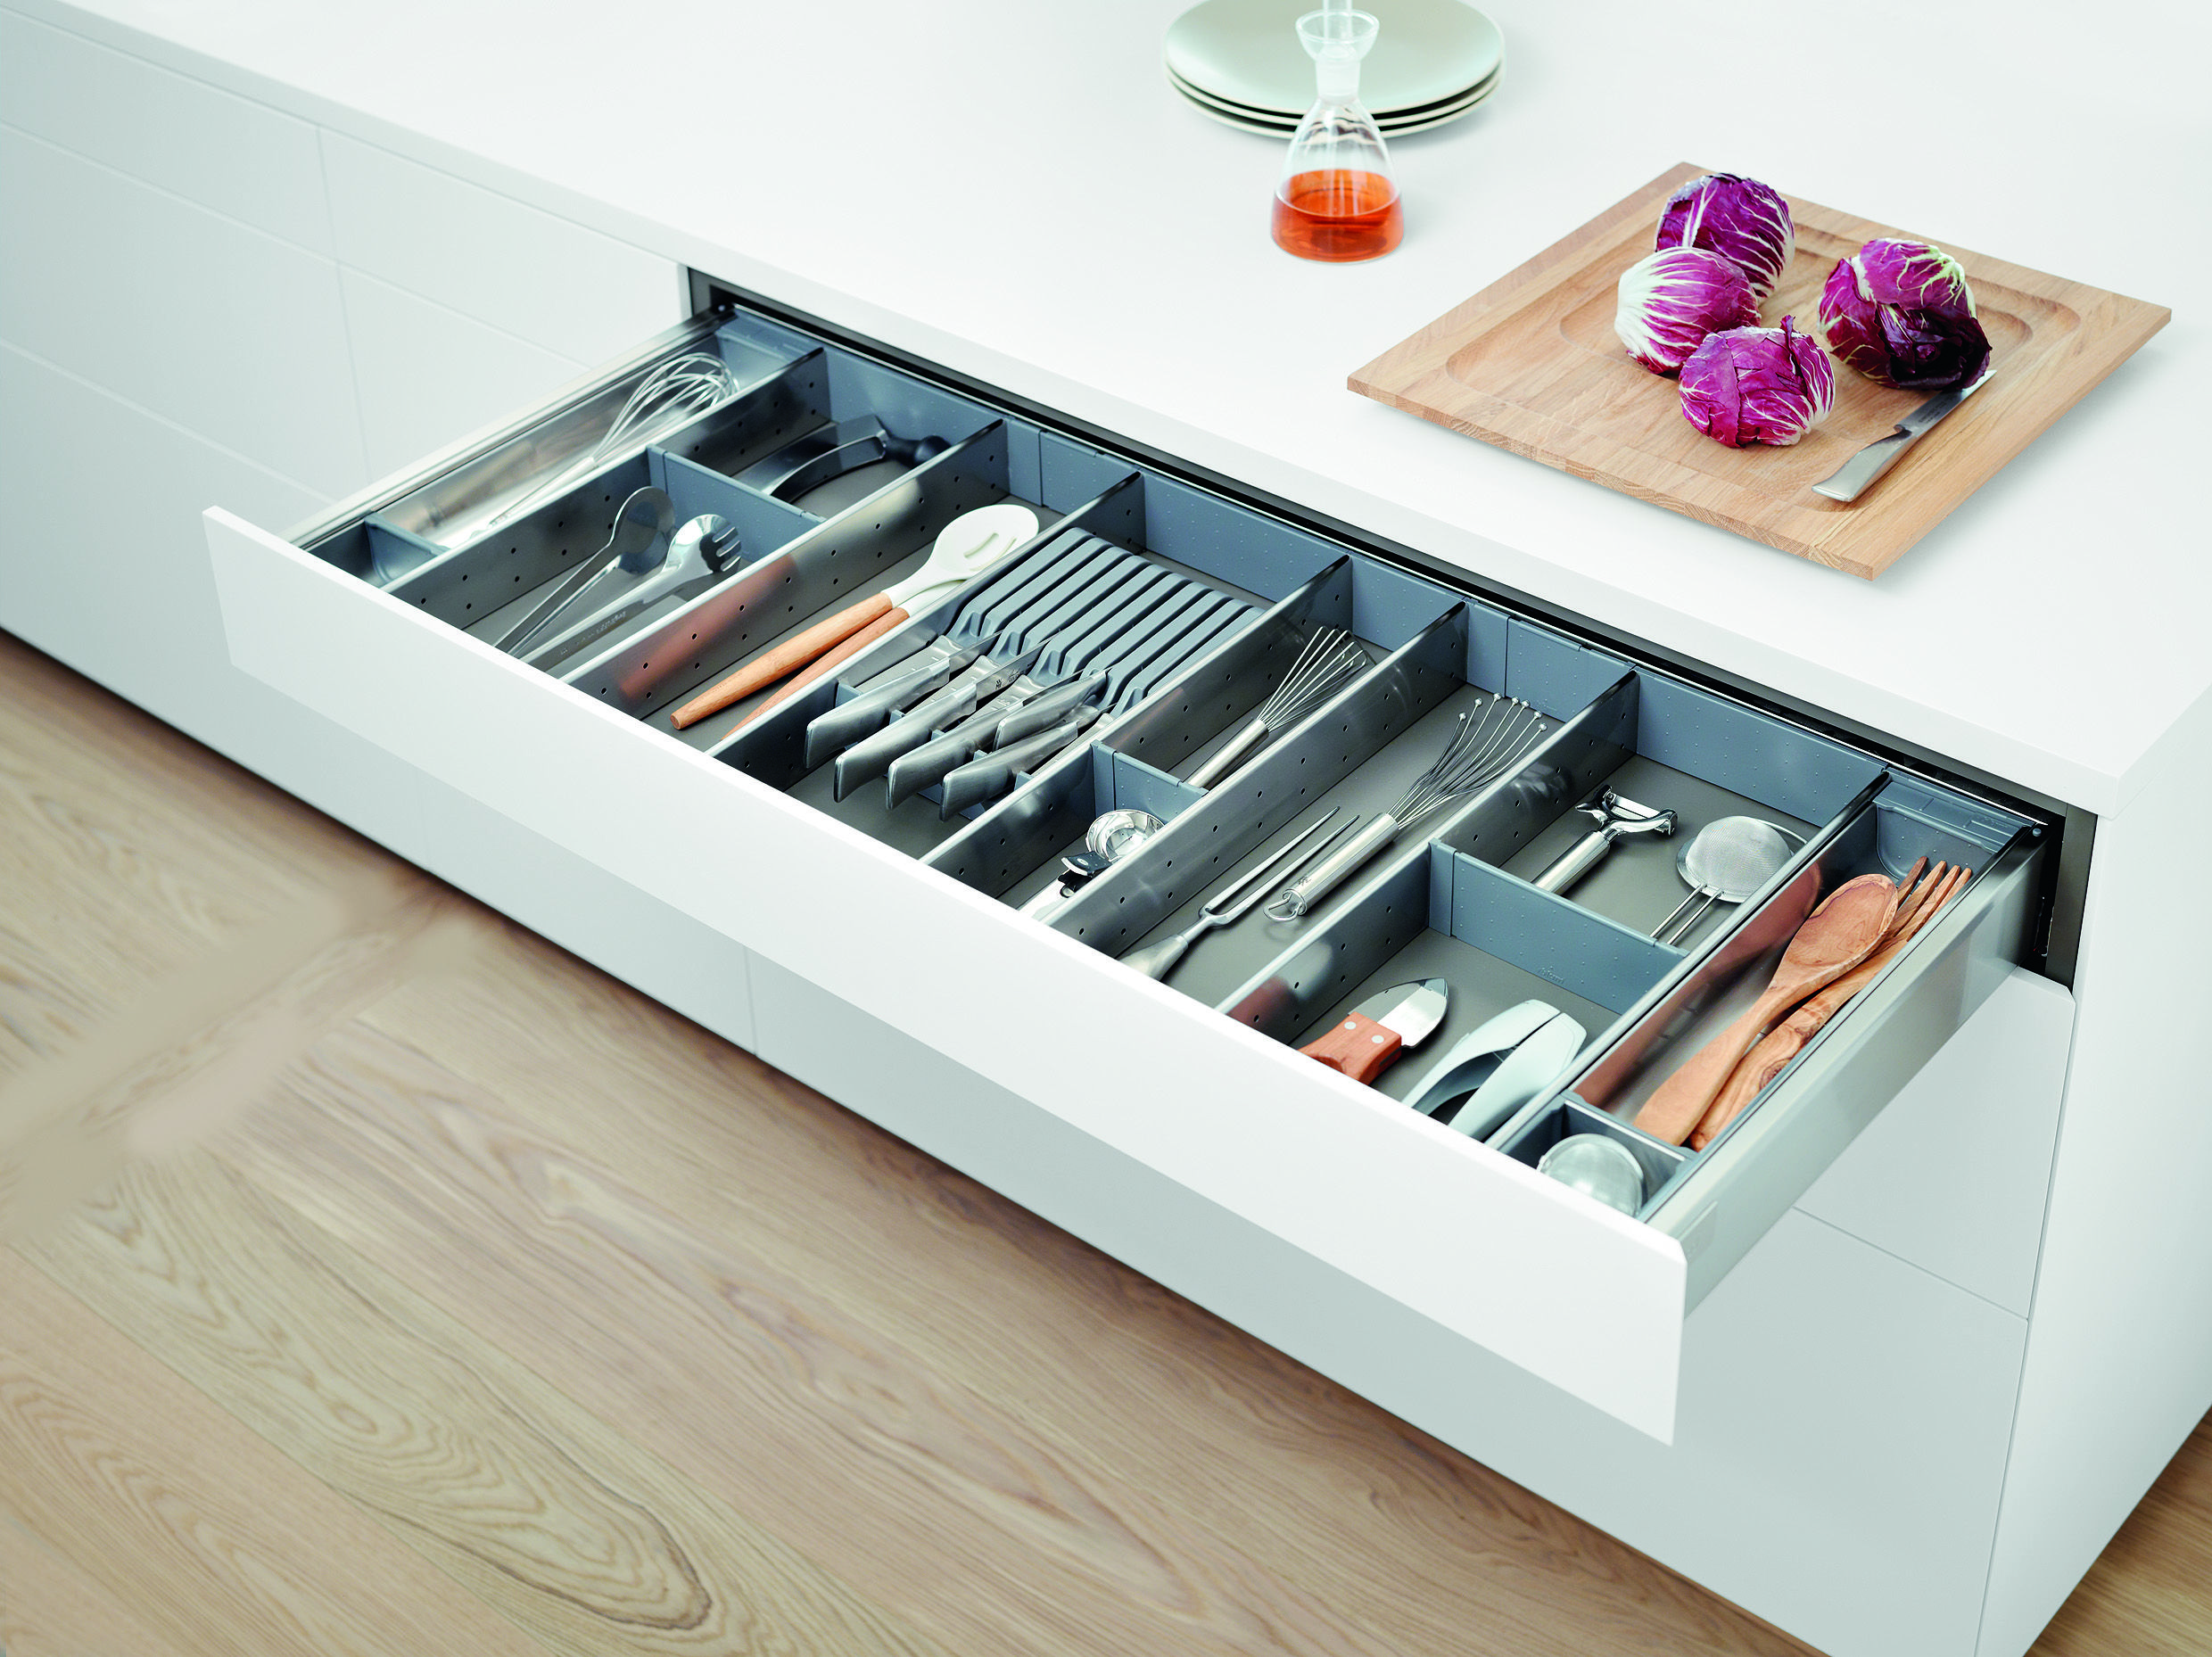 blum | Blum_box1604_4 | BLUM | Pinterest | Kitchens